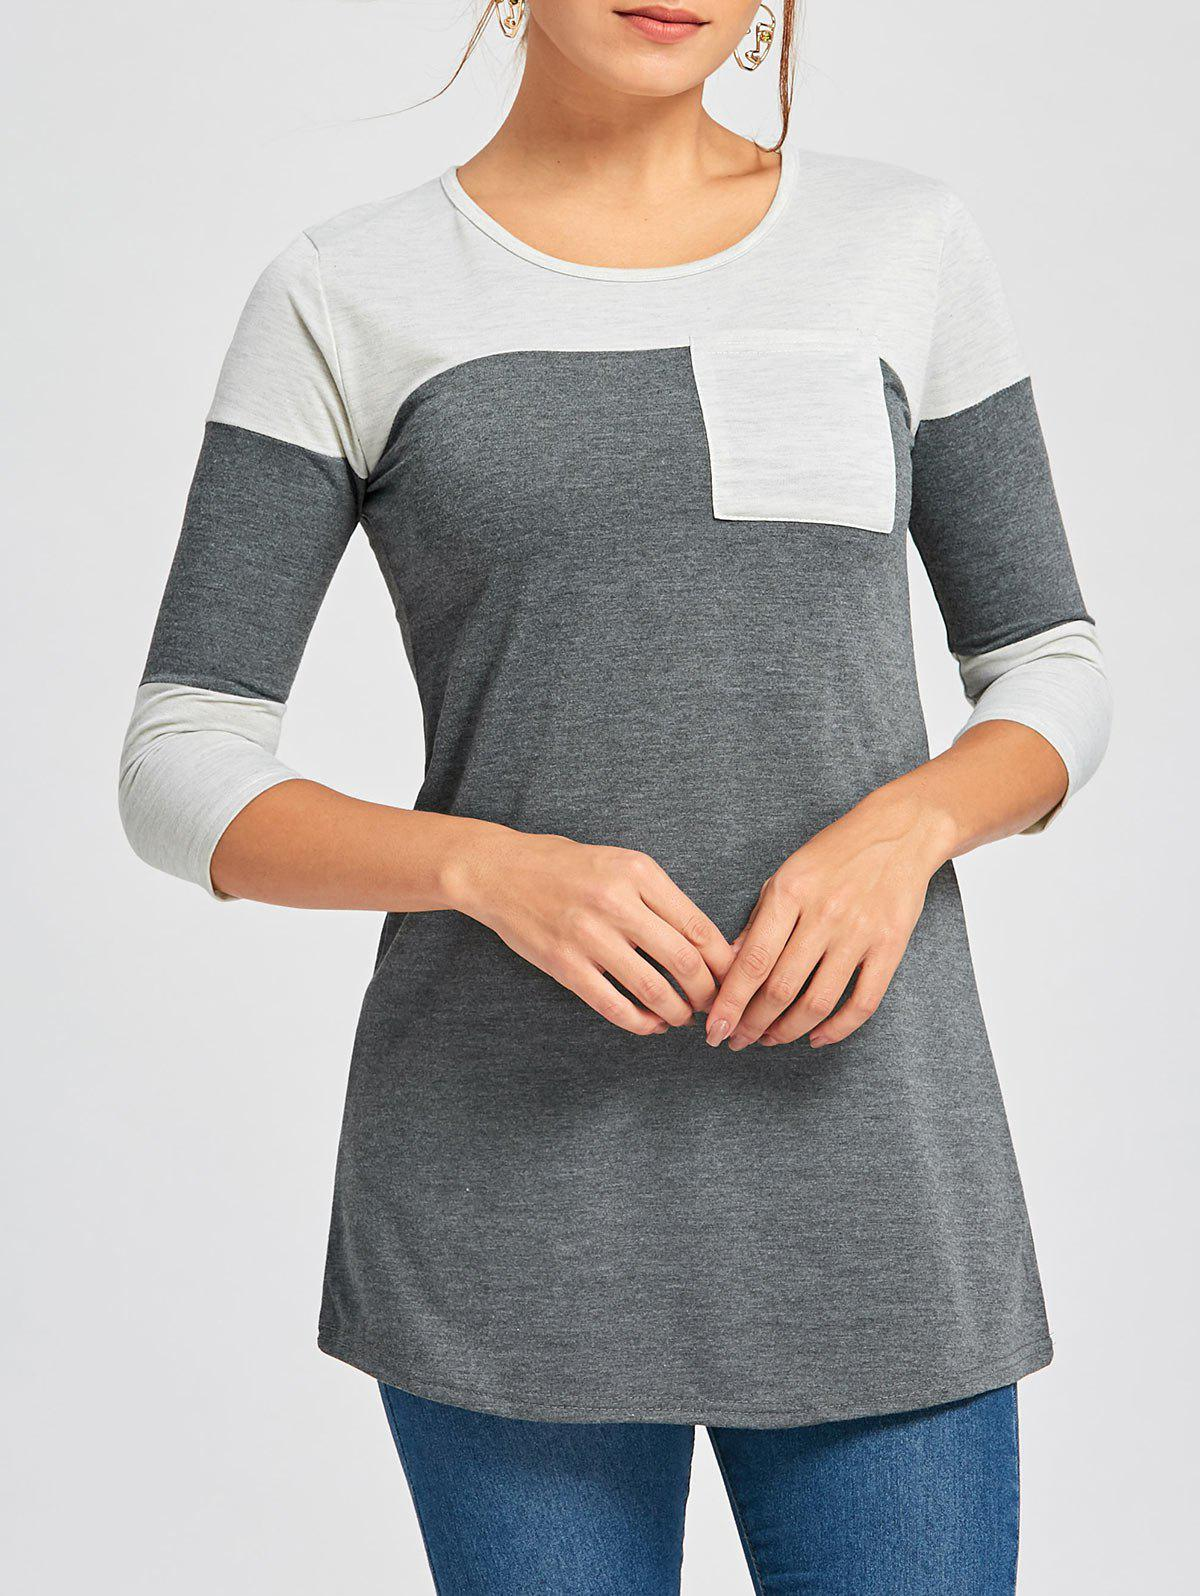 Color Block Tunic T Shirt - DEEP GRAY M